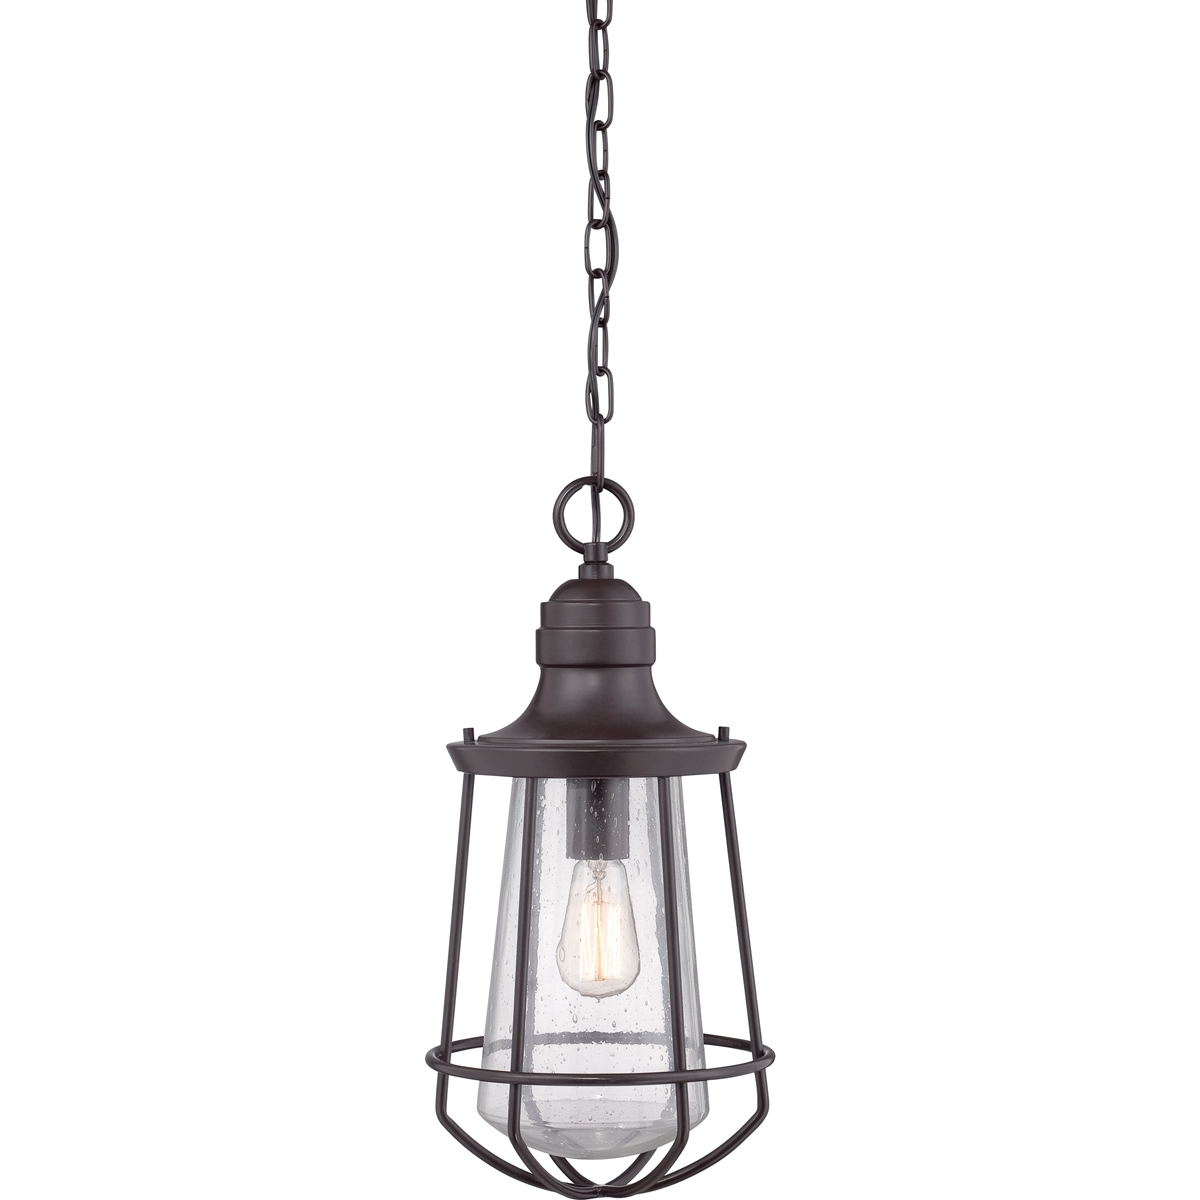 Fashionable Outdoor Hanging Light Fixtures Trends And Industrial Lights Pictures Pertaining To Outdoor Hanging Pendant Lights (View 3 of 20)